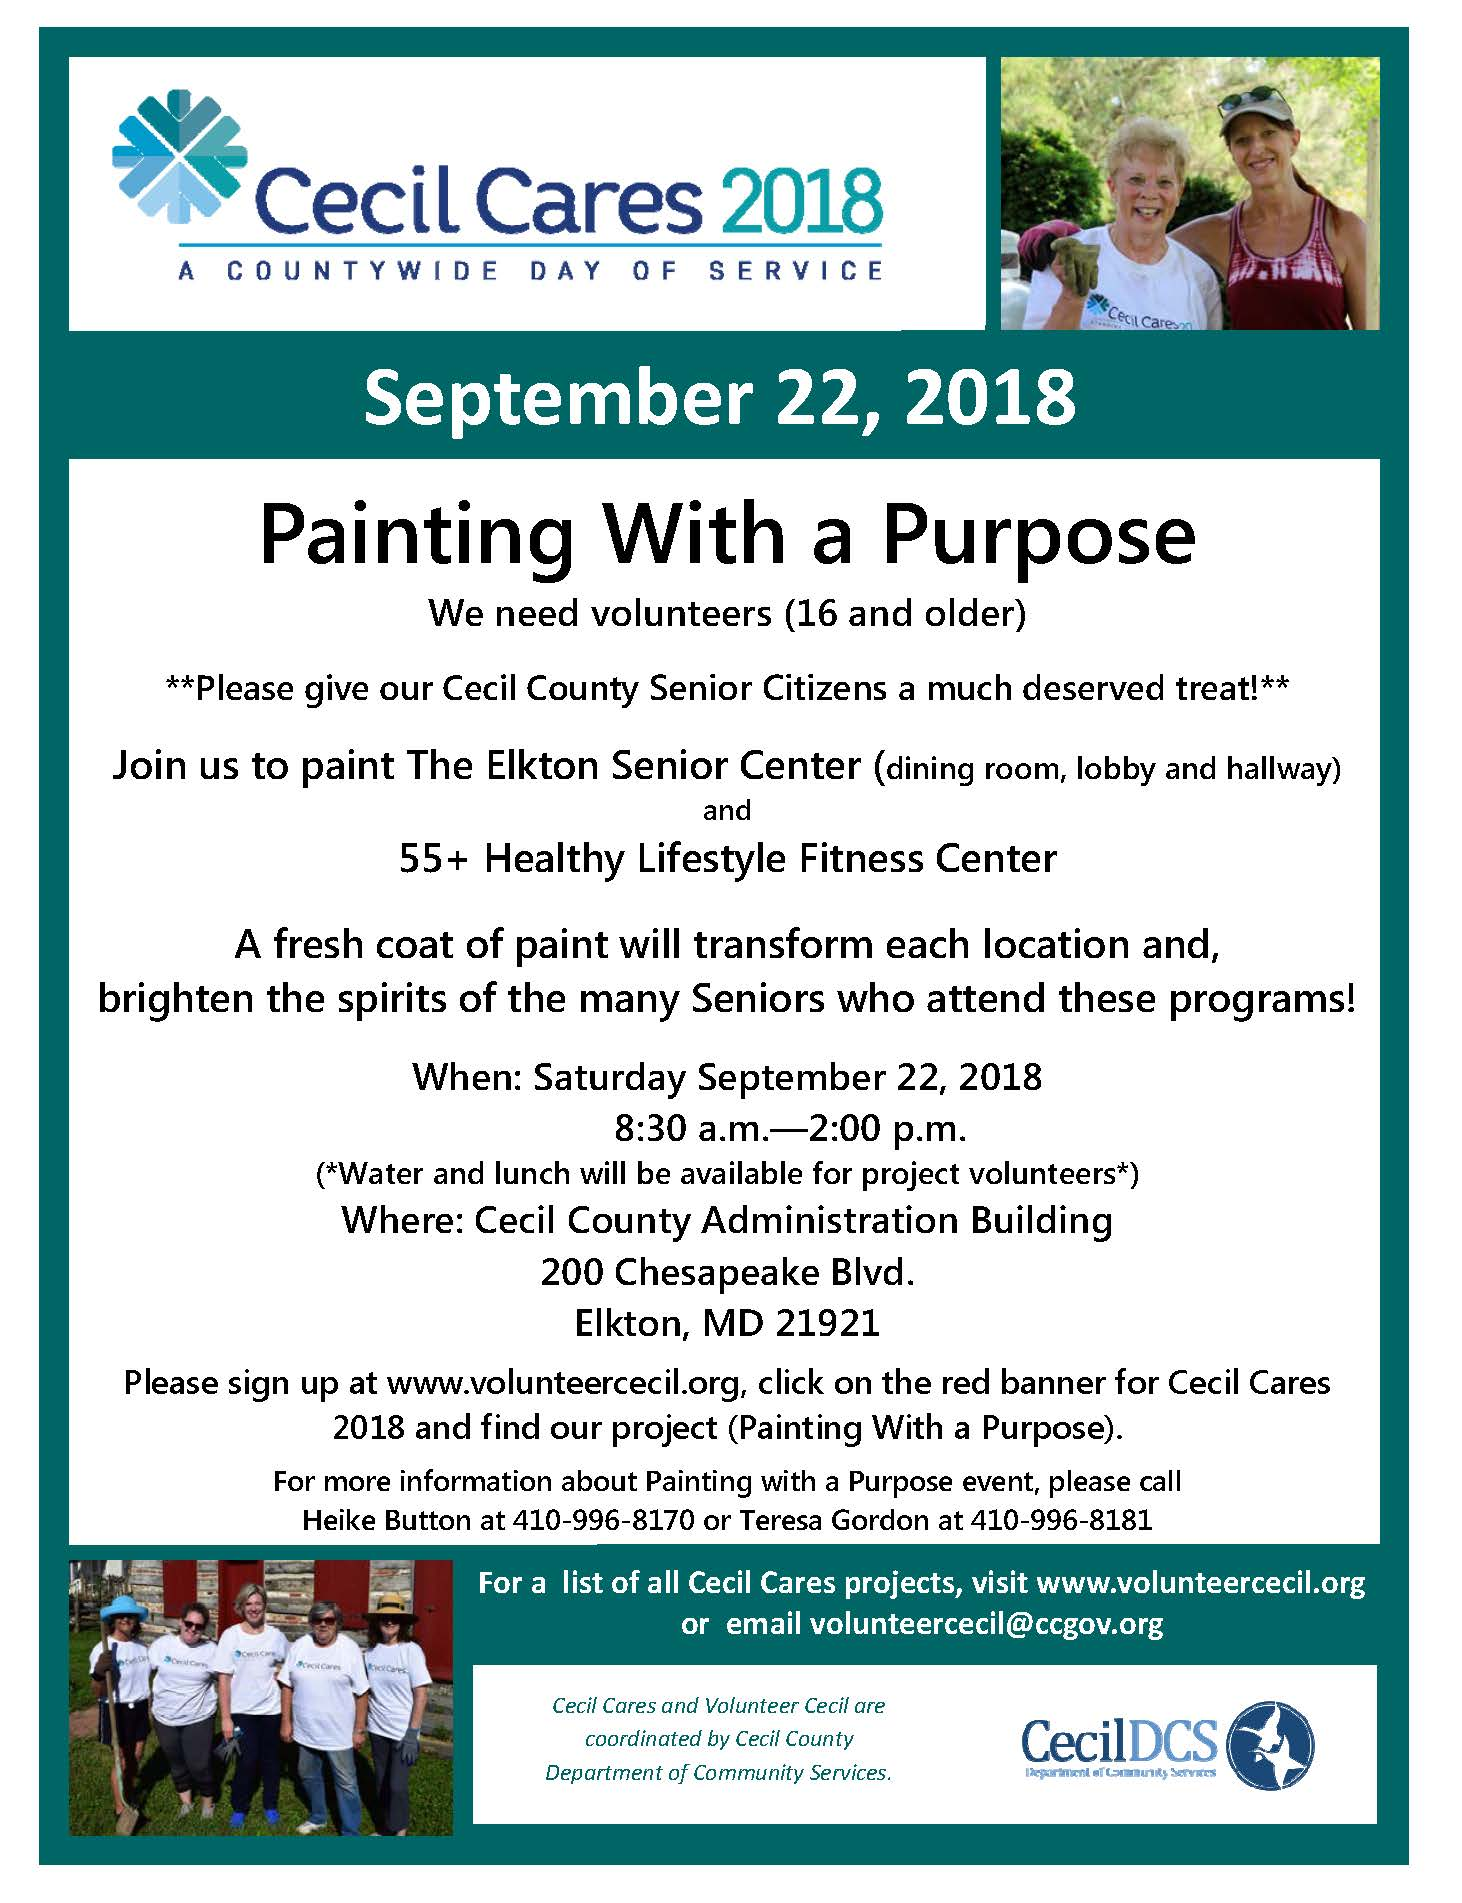 CECIL CARES Painting with a Purpose 2018 smm